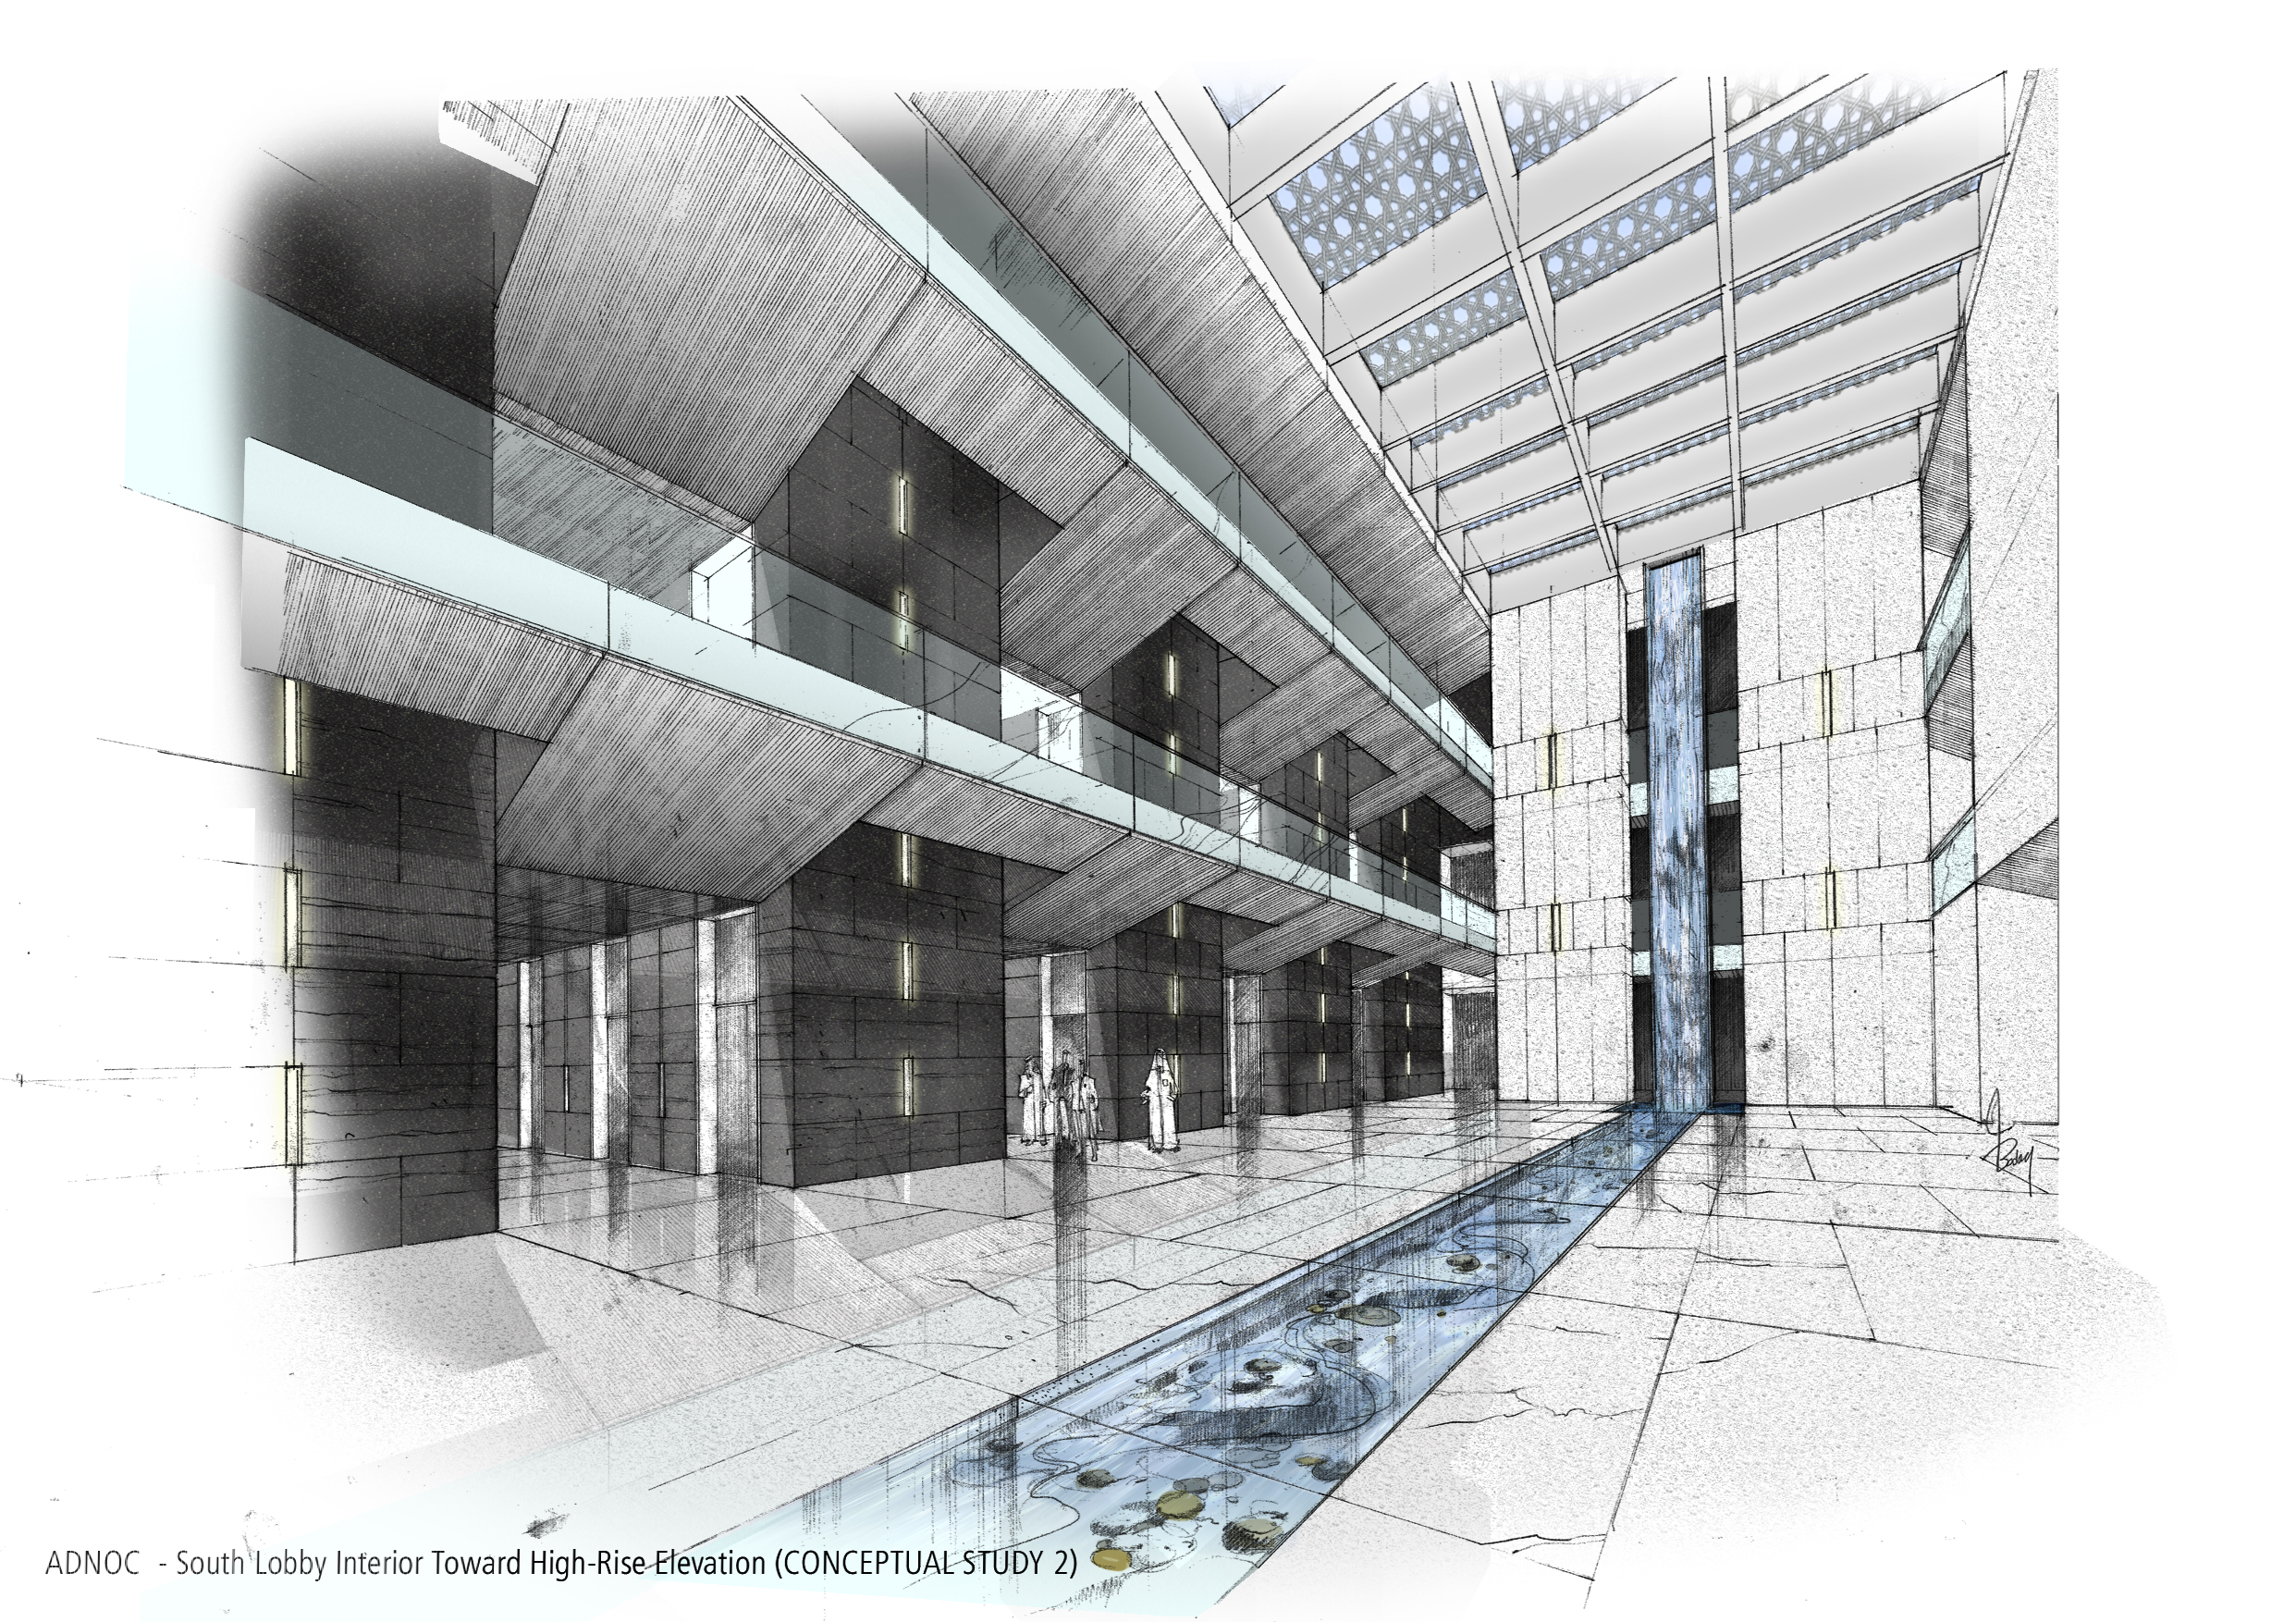 architectural sketches sketch coroflot architecture photoshop drawing architect rendering interior collin building background vacation presentation entourage newdesignfile byrnes hand perspective